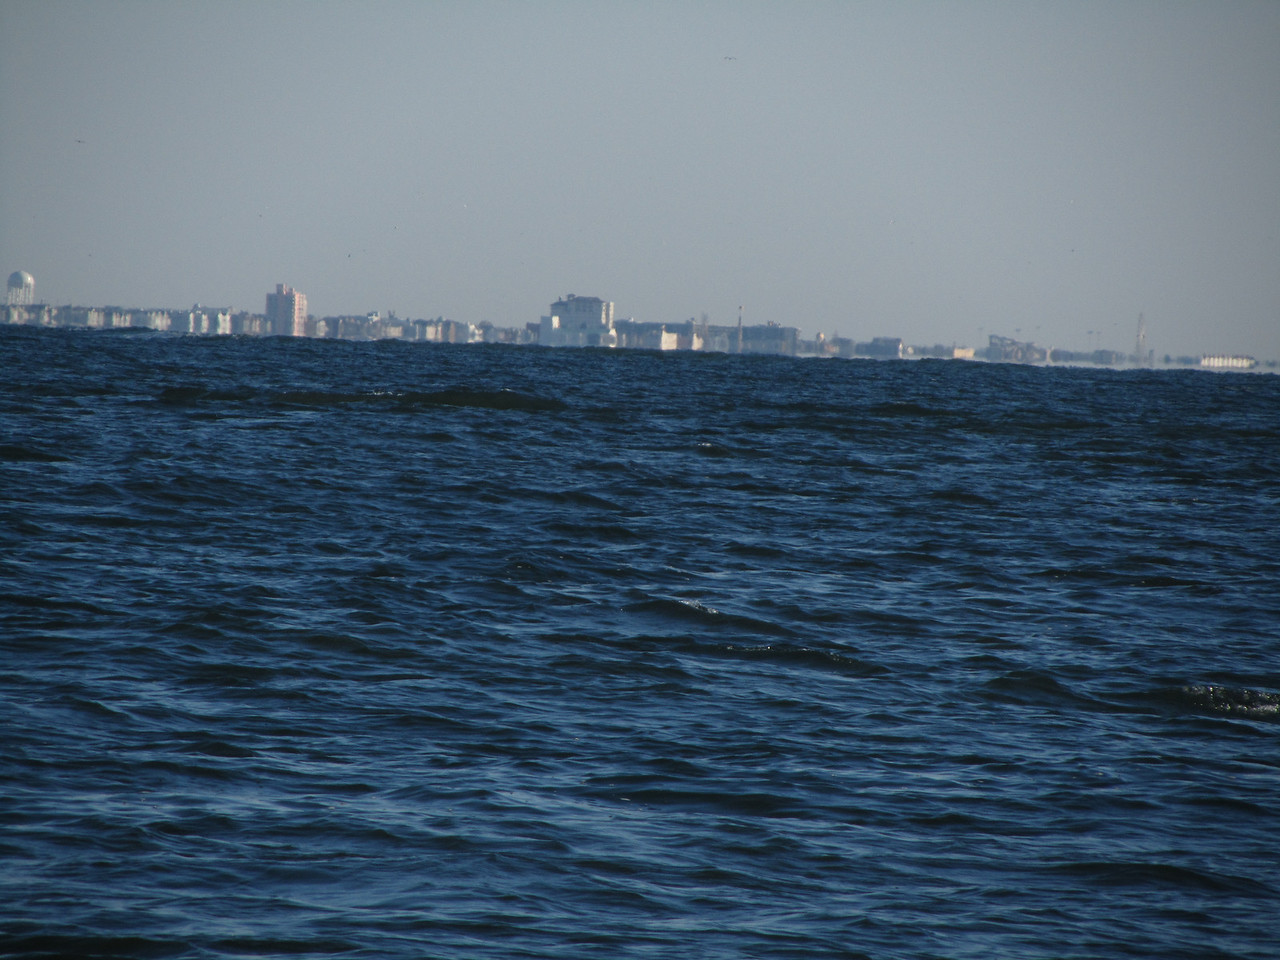 Looking North to the next island in the chain, and Ocean City NY.